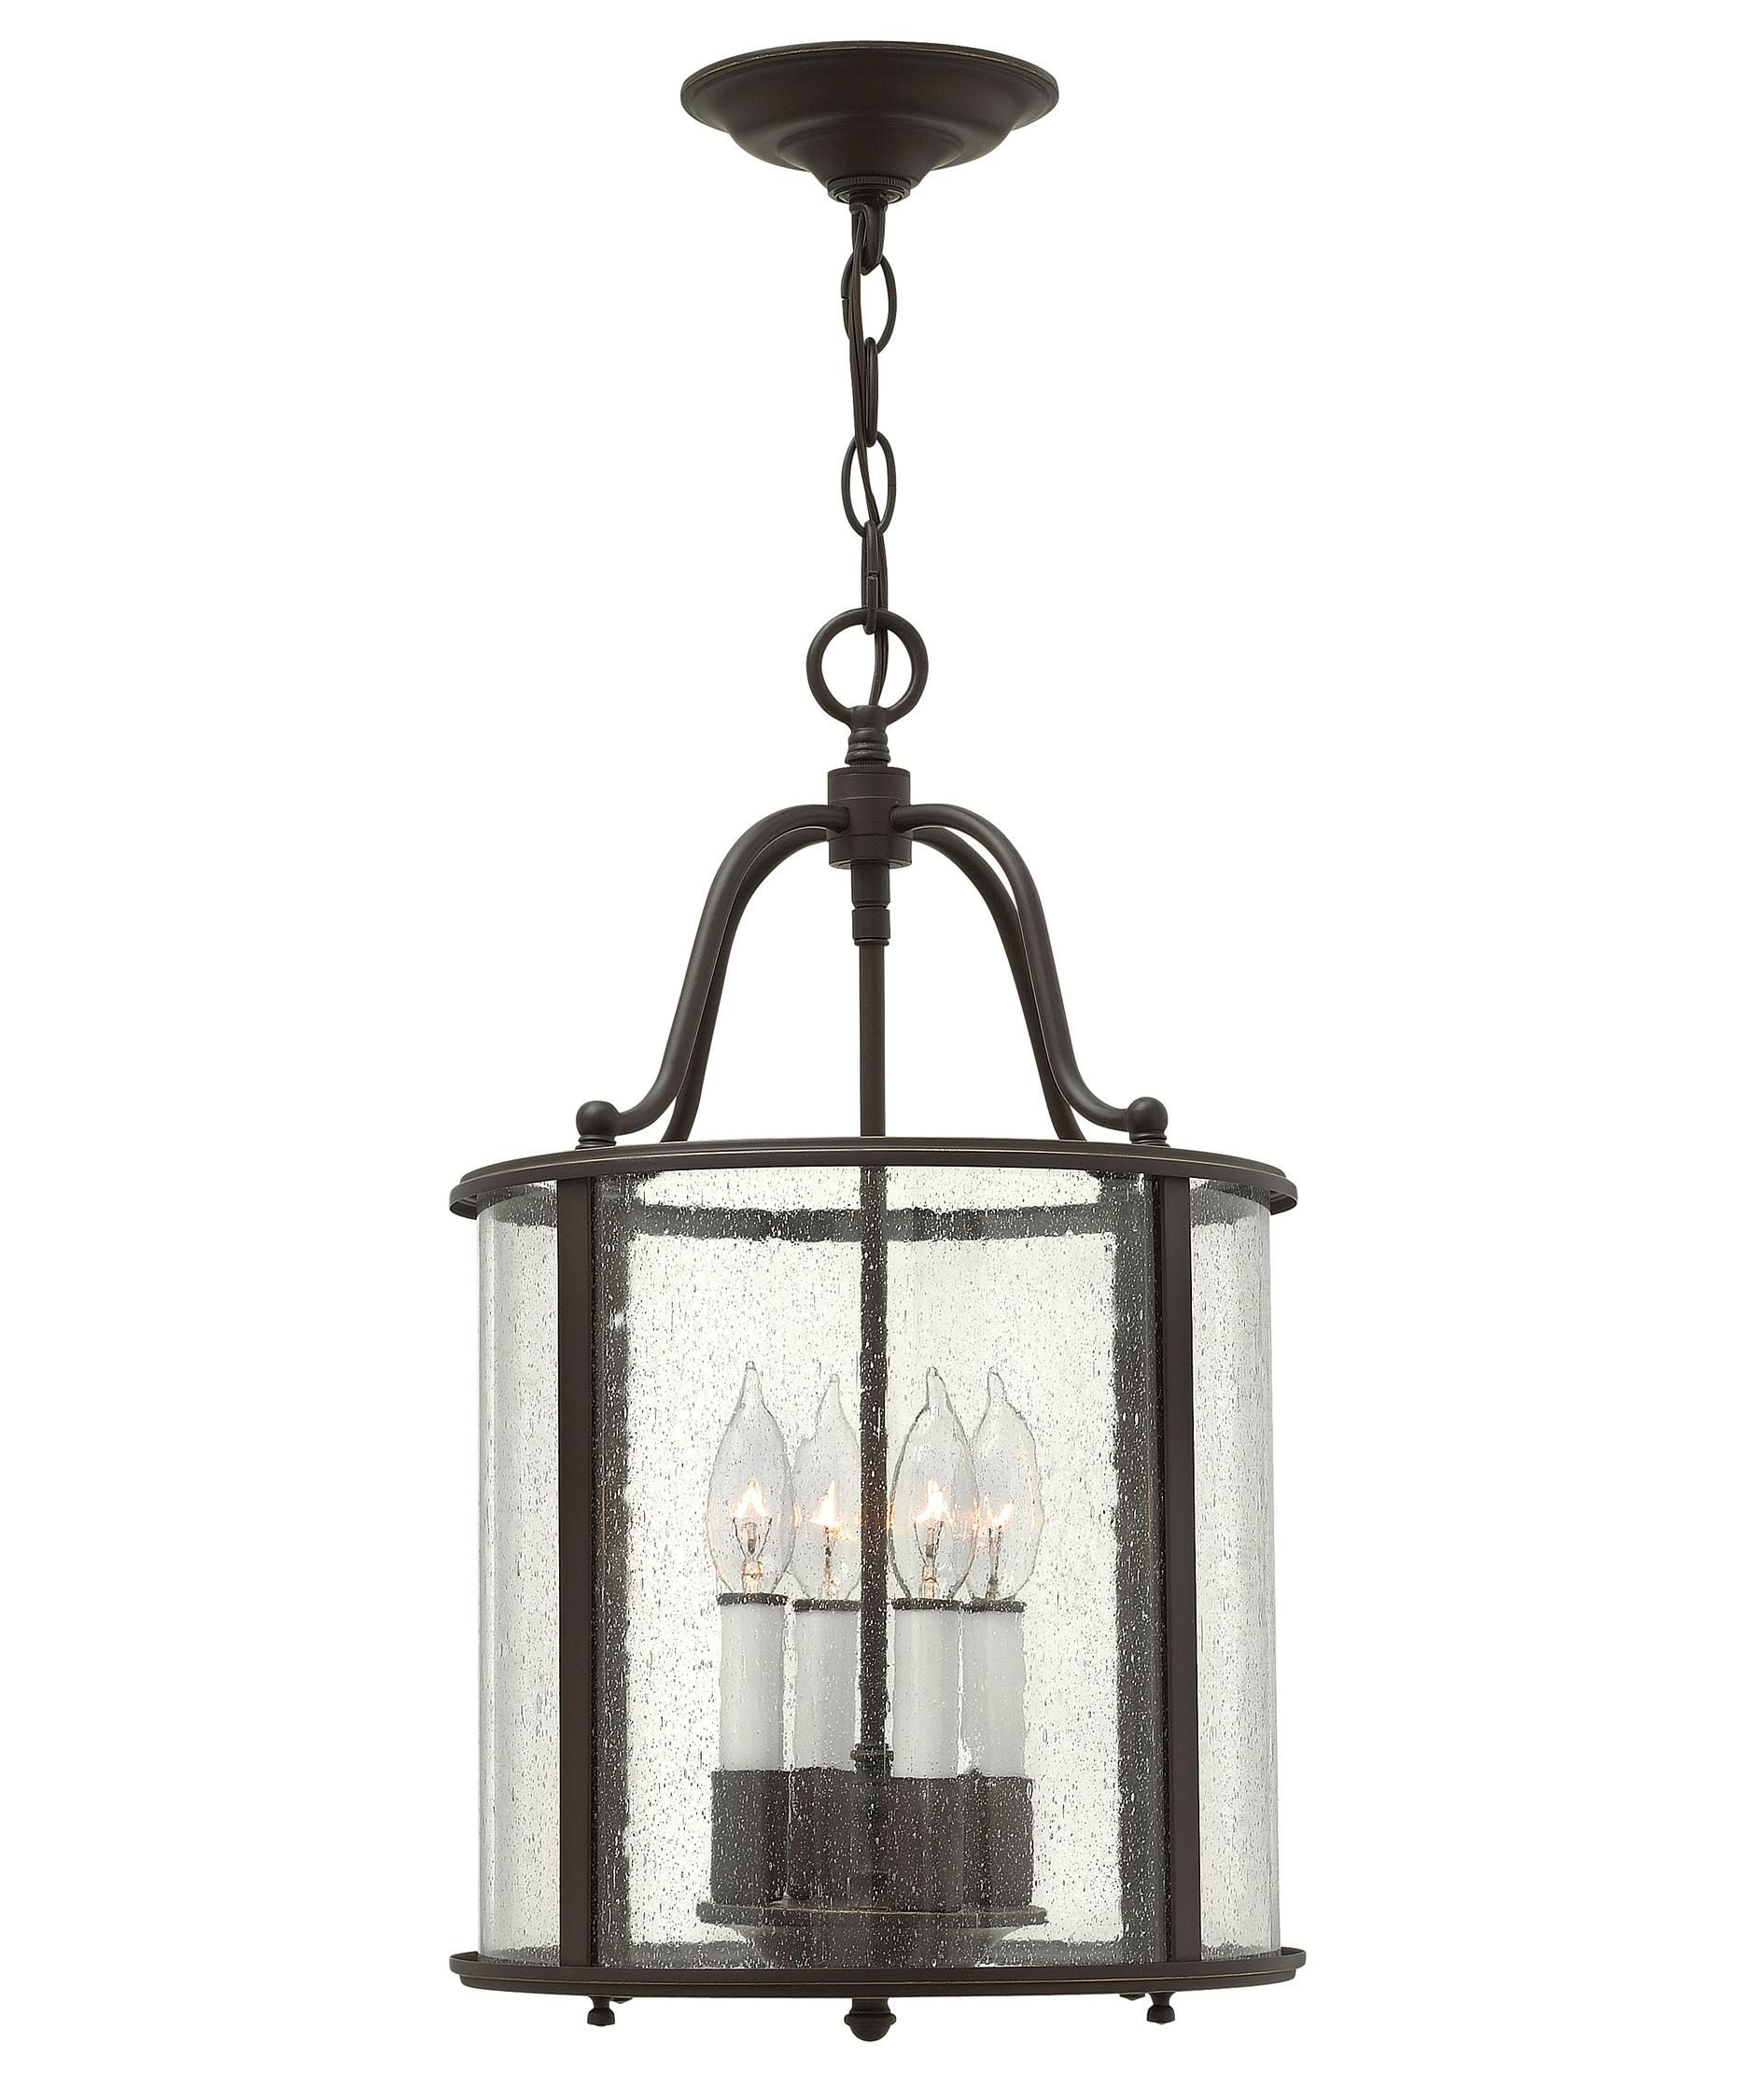 indoor the olde gentry full bronze capitol foyer lantern pin lighting pendants hinkley from inch collectio light pendant sized